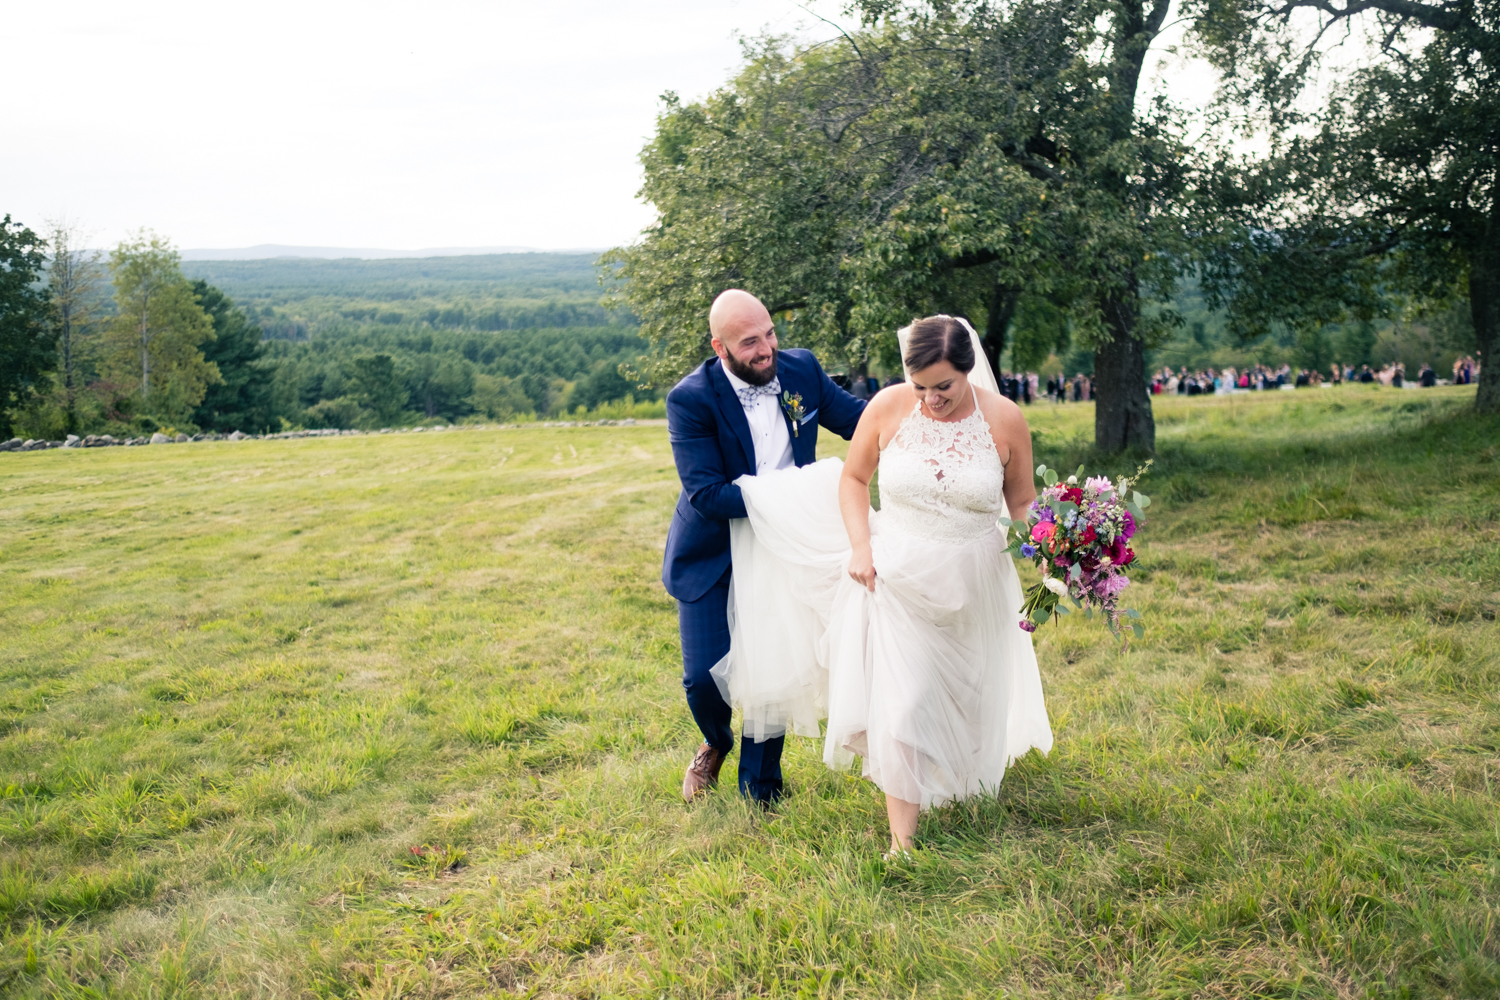 Maley_Dave_Fruitlands_Museum_Wedding-45.jpg